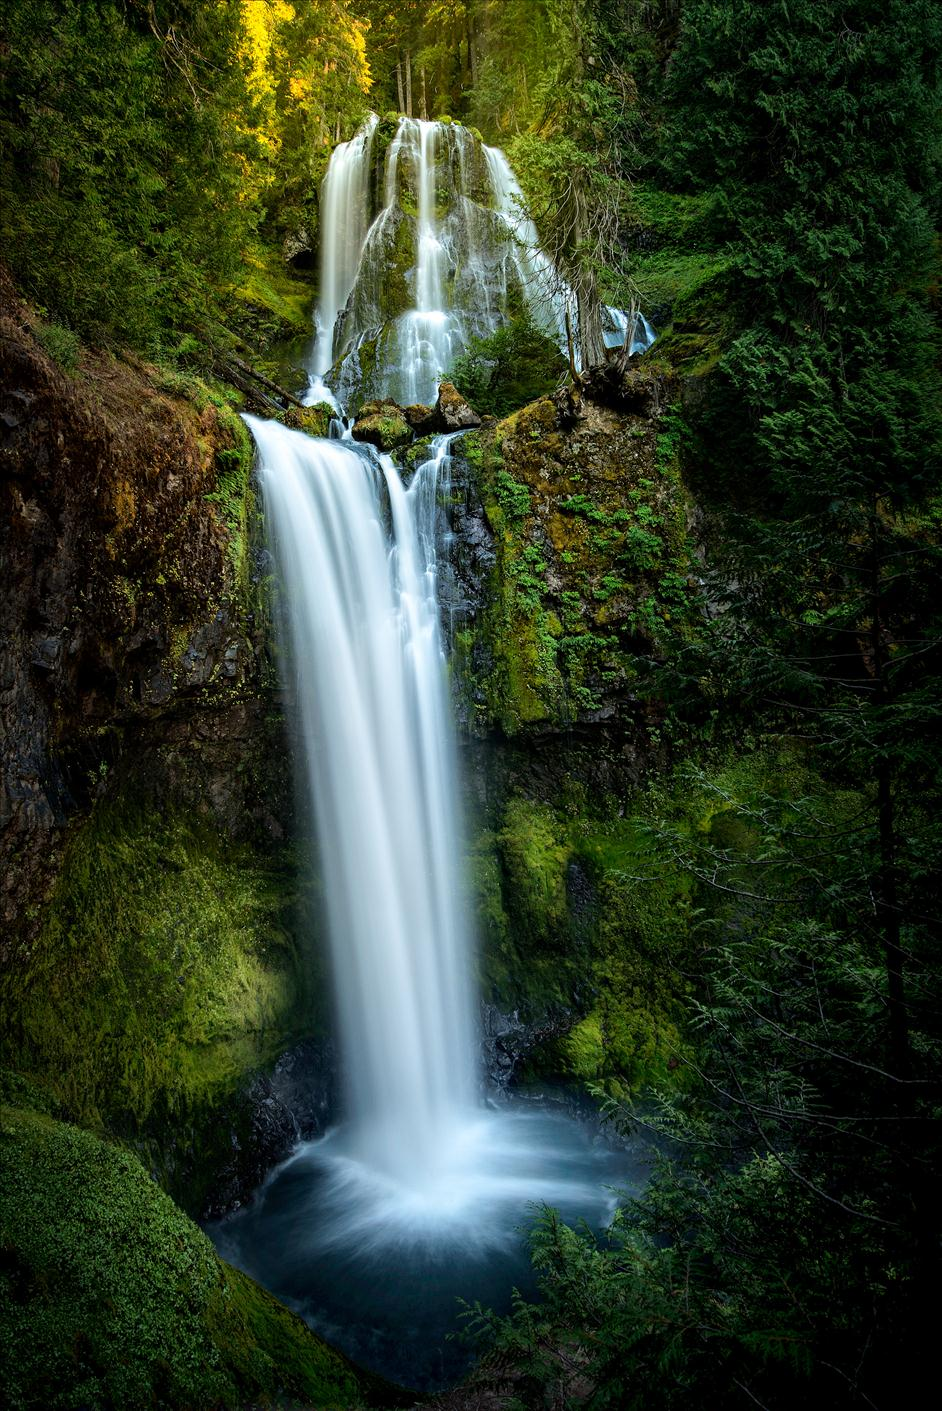 Falls Creek Oregon // Matt Kloskowski's Top 5 Landscapes to Photography // Nations Photo Lab